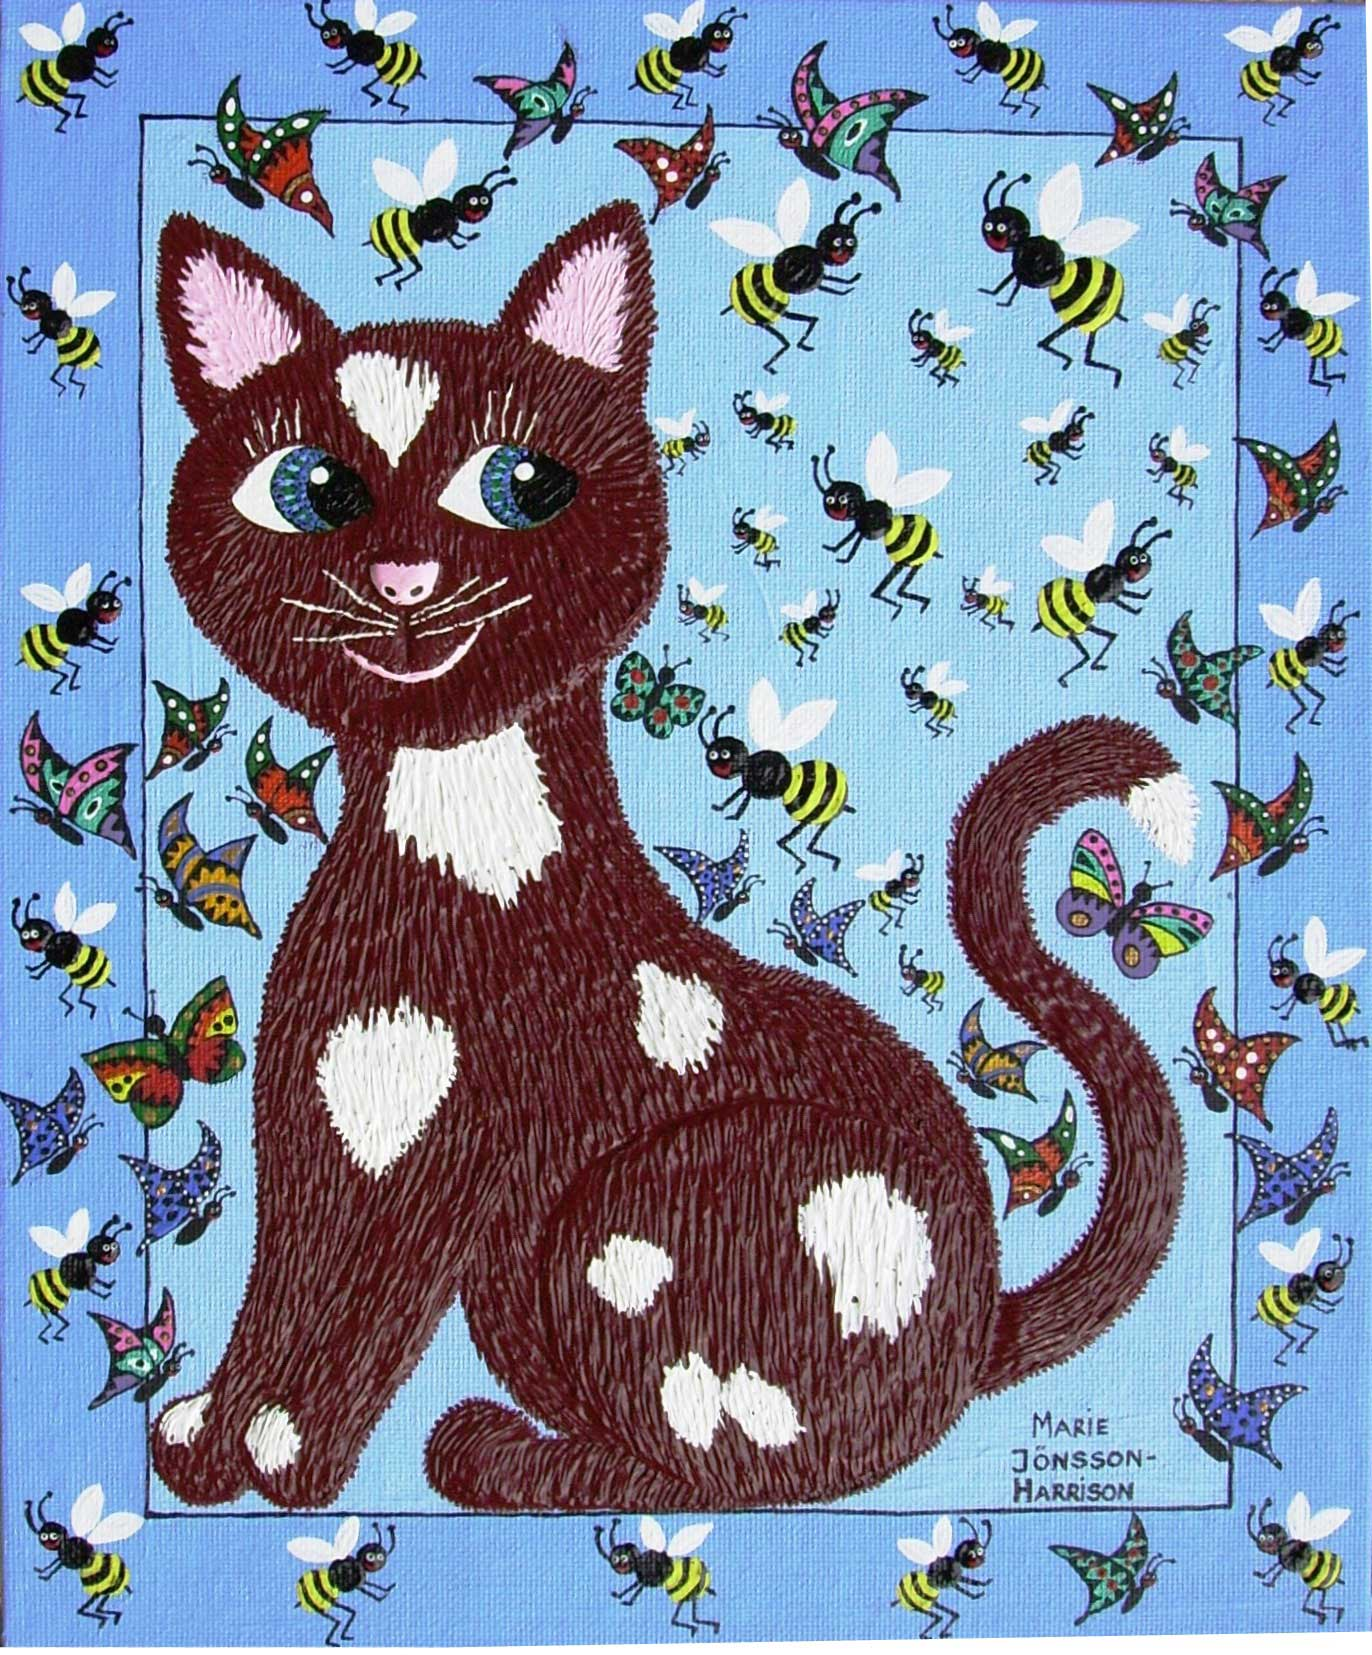 naive painting of a cat with bees and butterflies buzzing all around by artist marie jonsson harrison